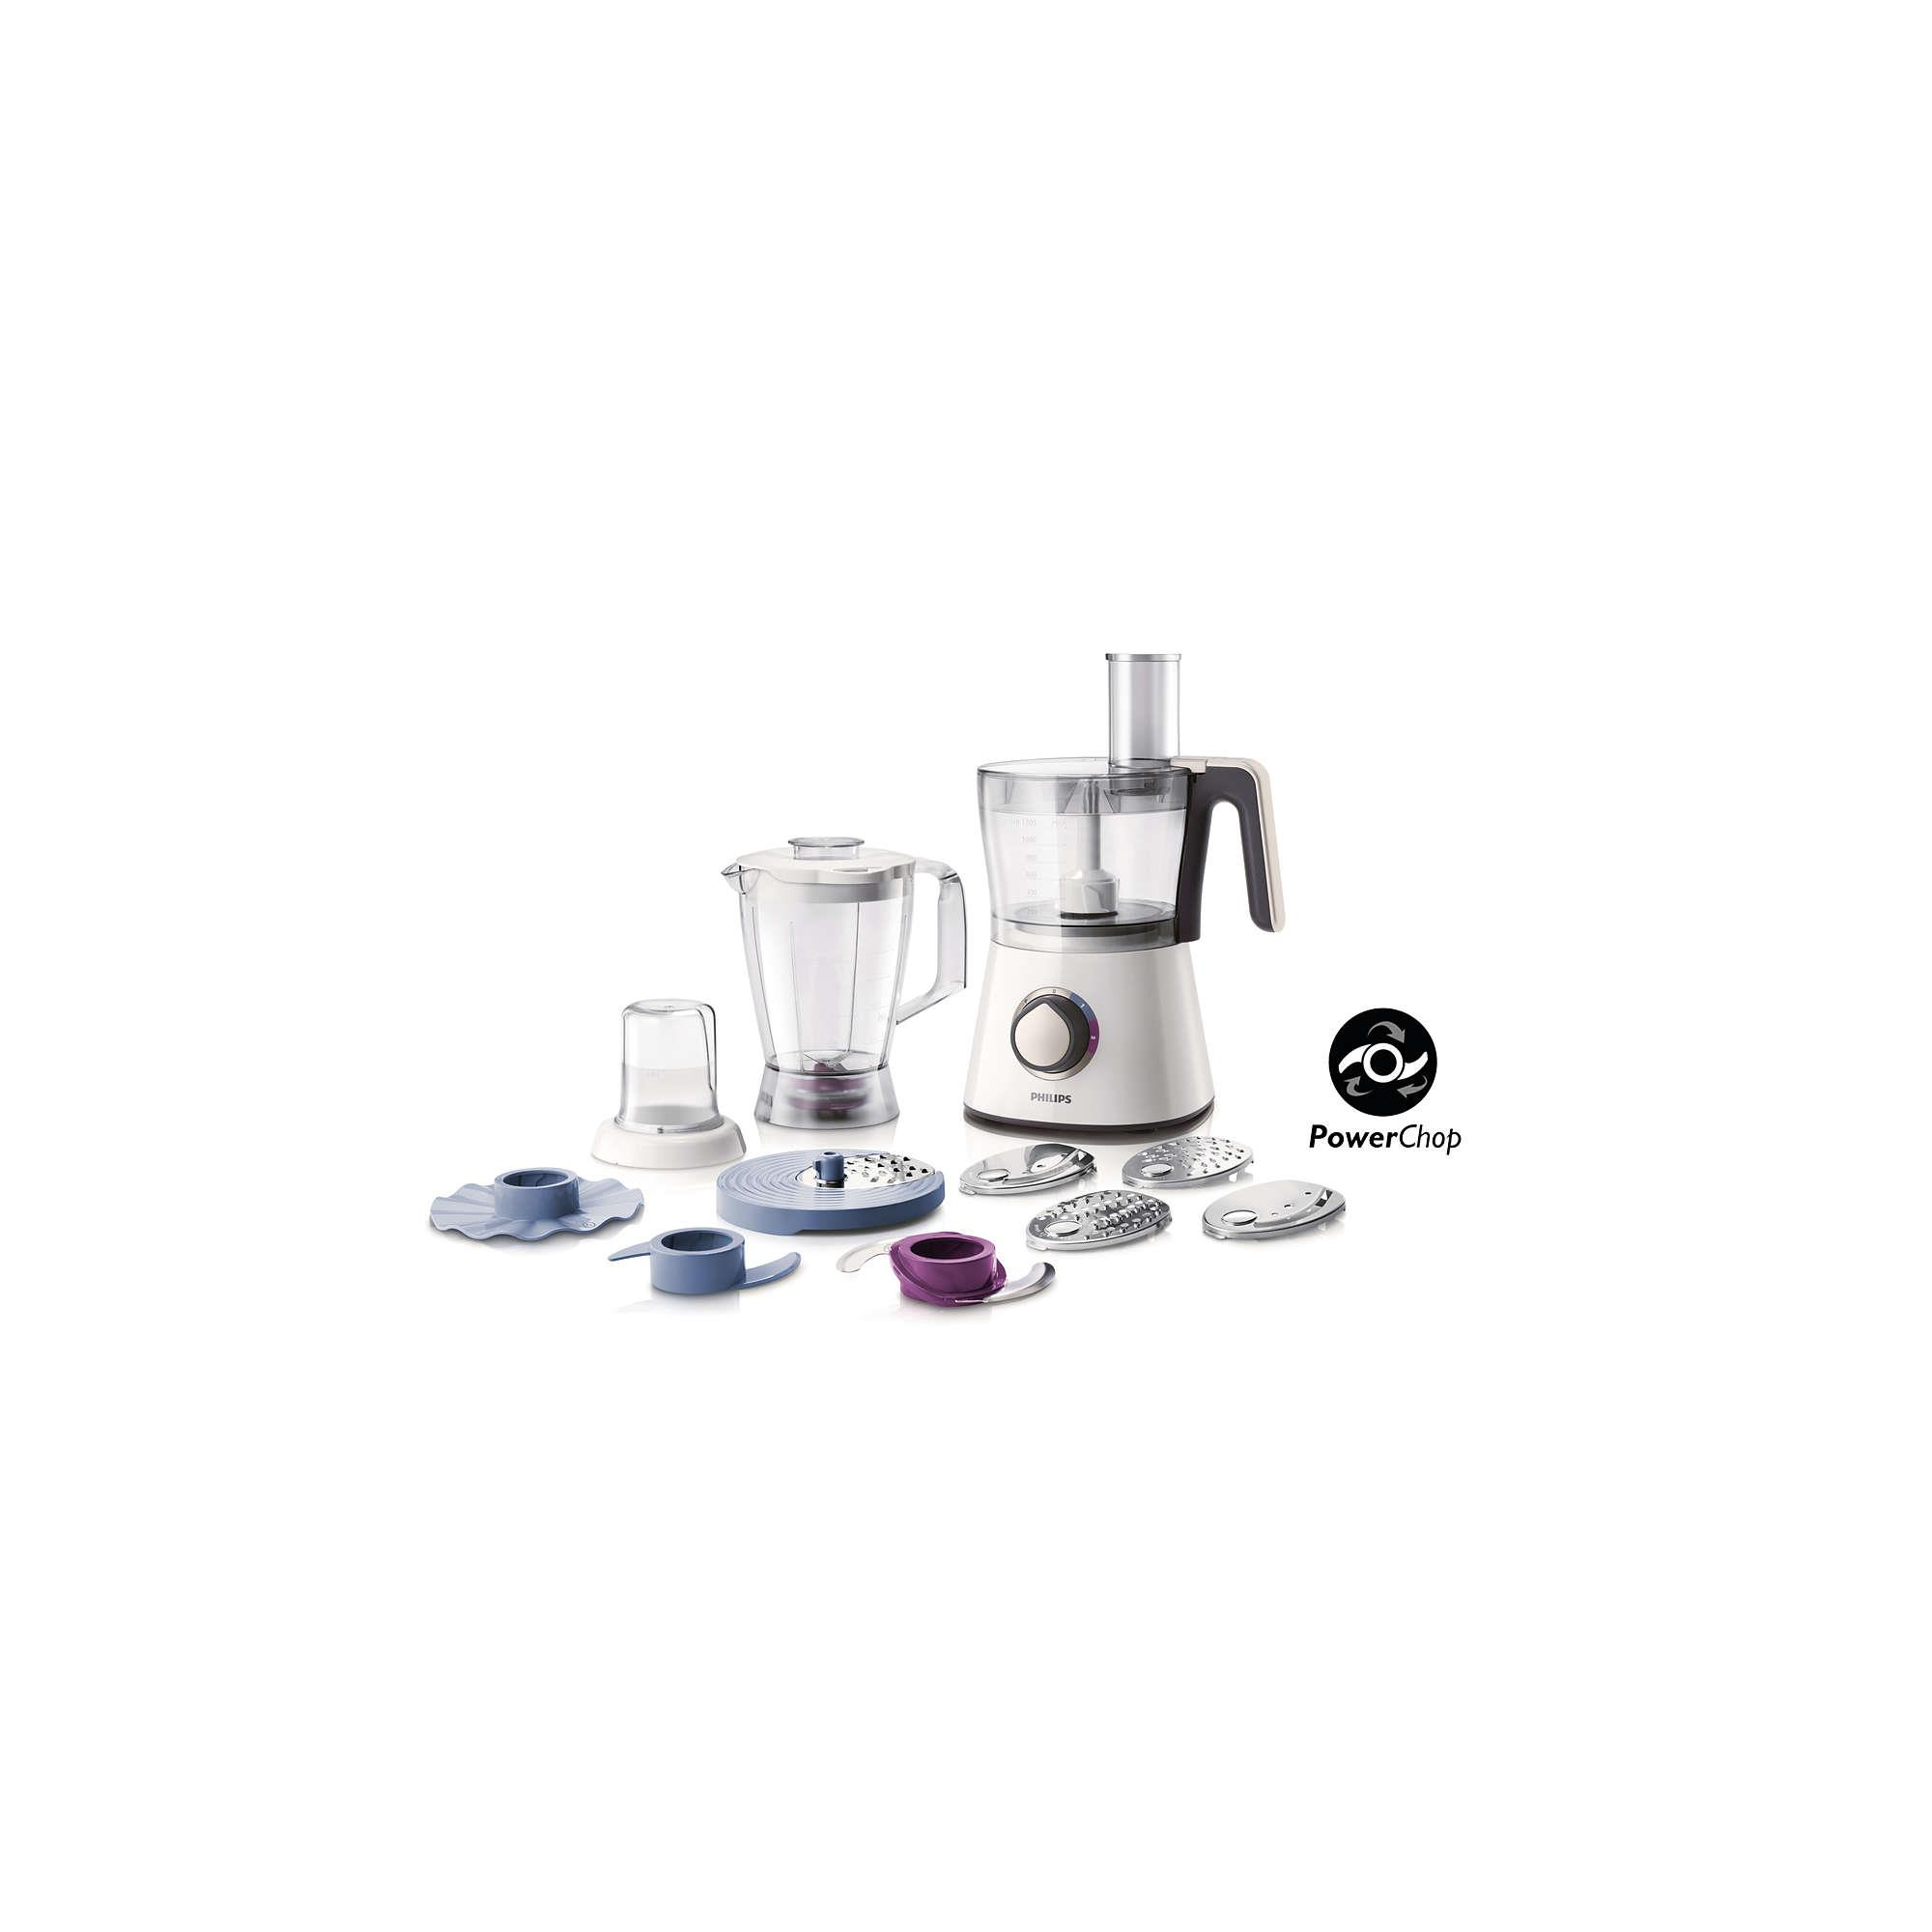 Philips Viva Collection Food processor HR7761/00 750 W Compact 3in1 setup 2.2 L bowl